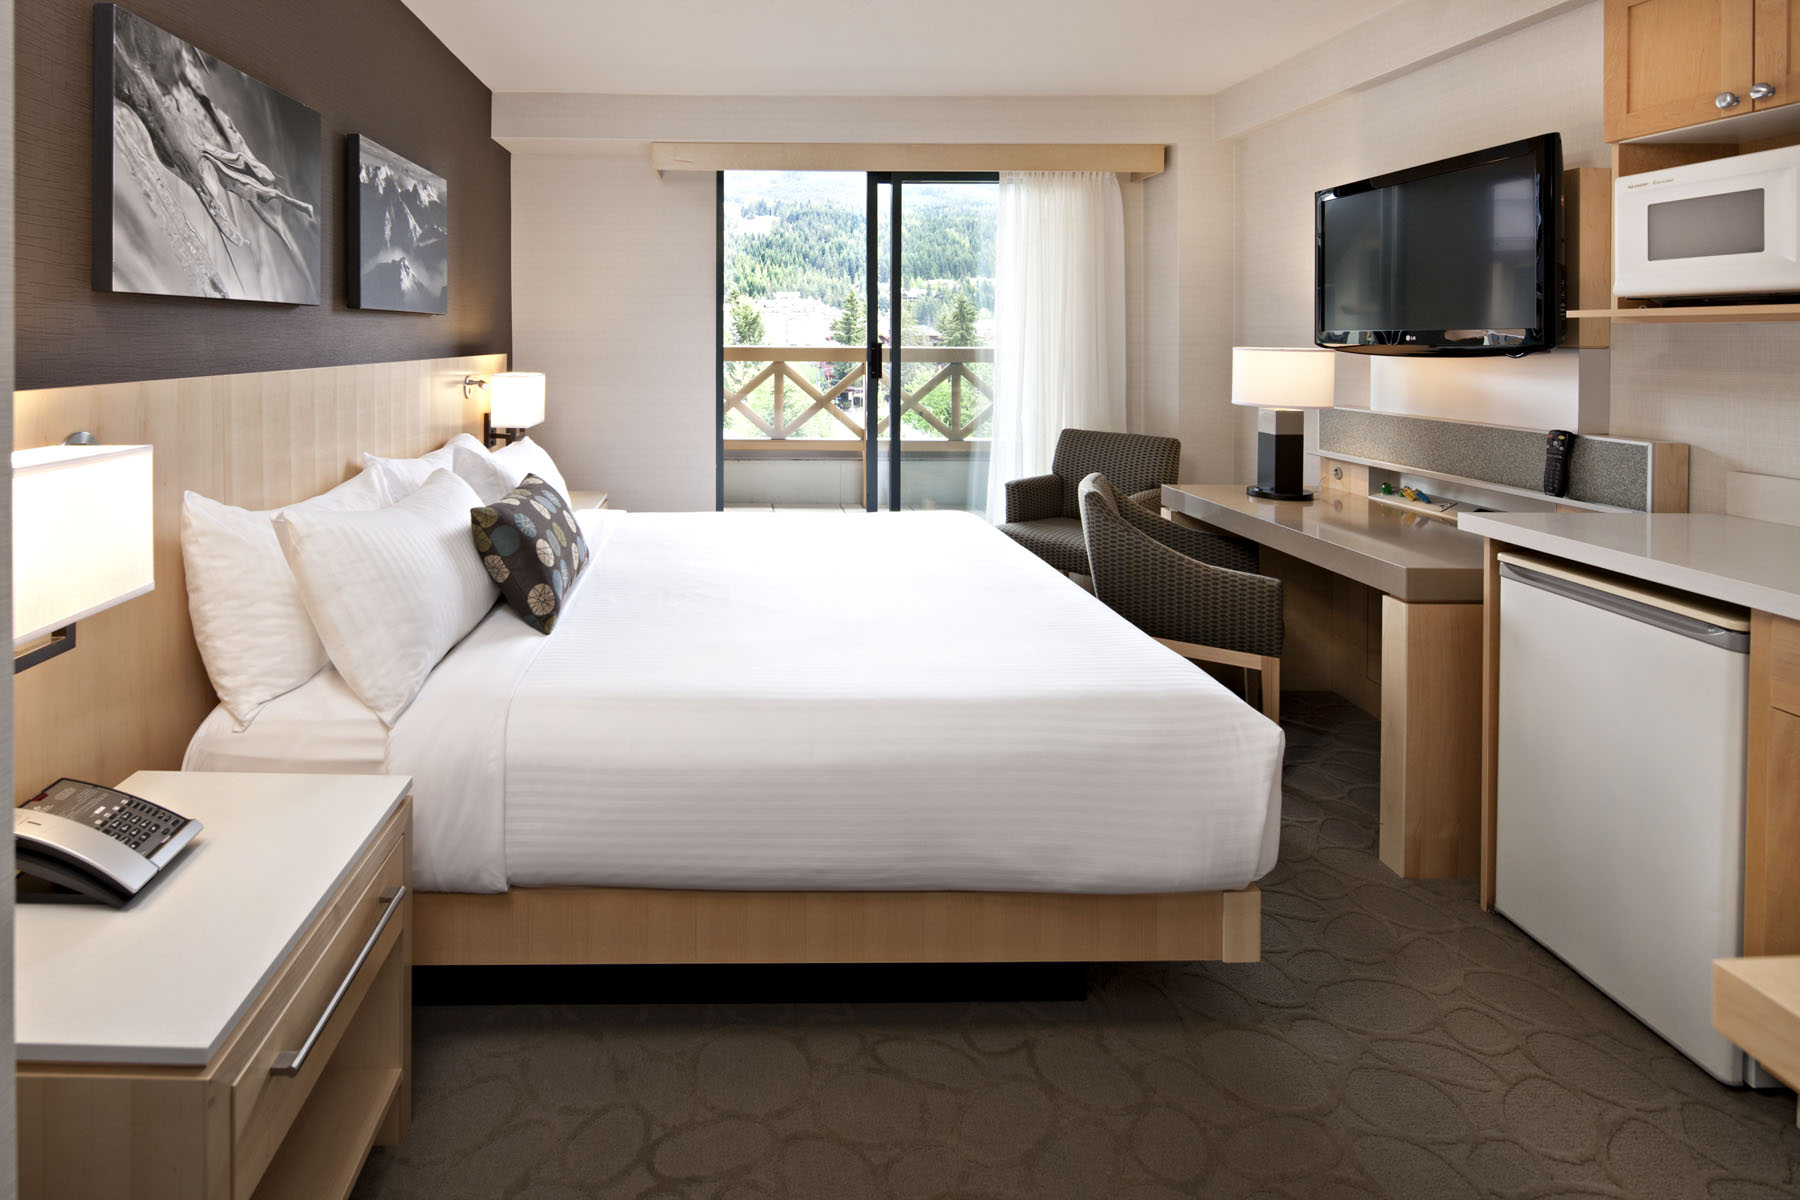 Guests Will Be Inspired At The New Toronto Marriott: Delta Whistler Village Suites